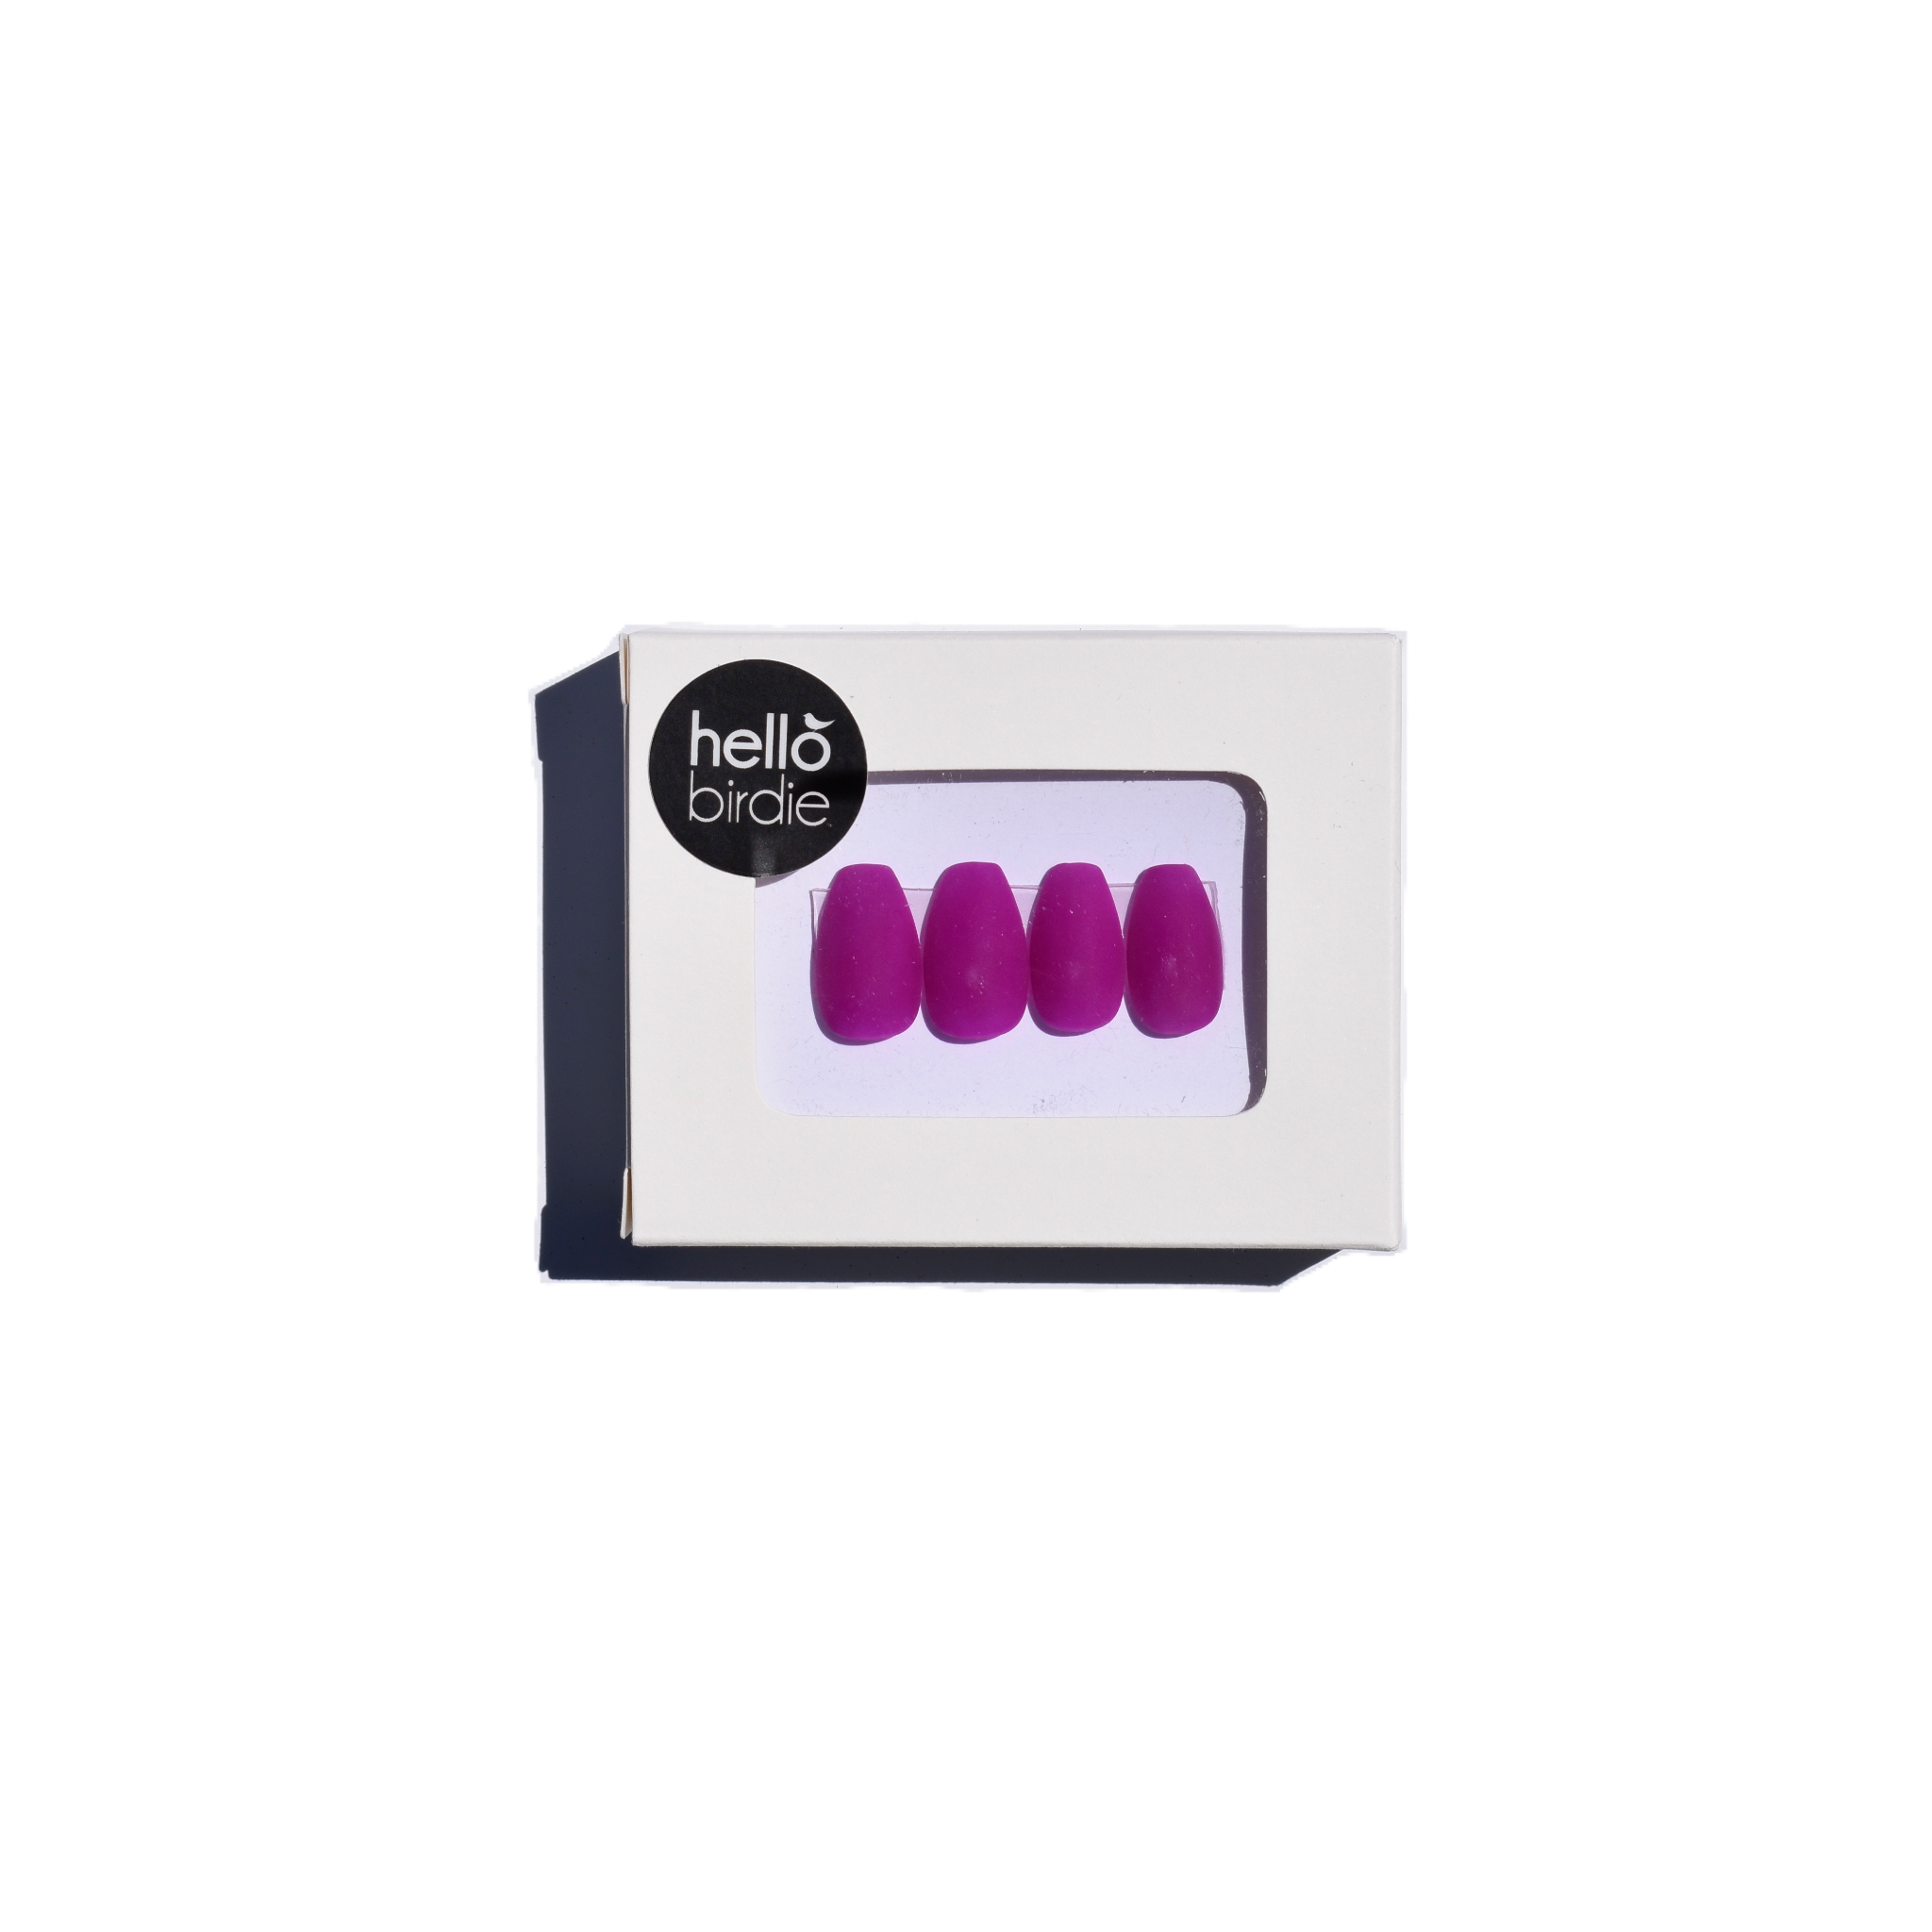 Four press-ons packaged in a rectangular box with a Hello Birdie logo on the top left corner.  A window with rounded corners allows you to view the fuschia matte coffin shaped nails.